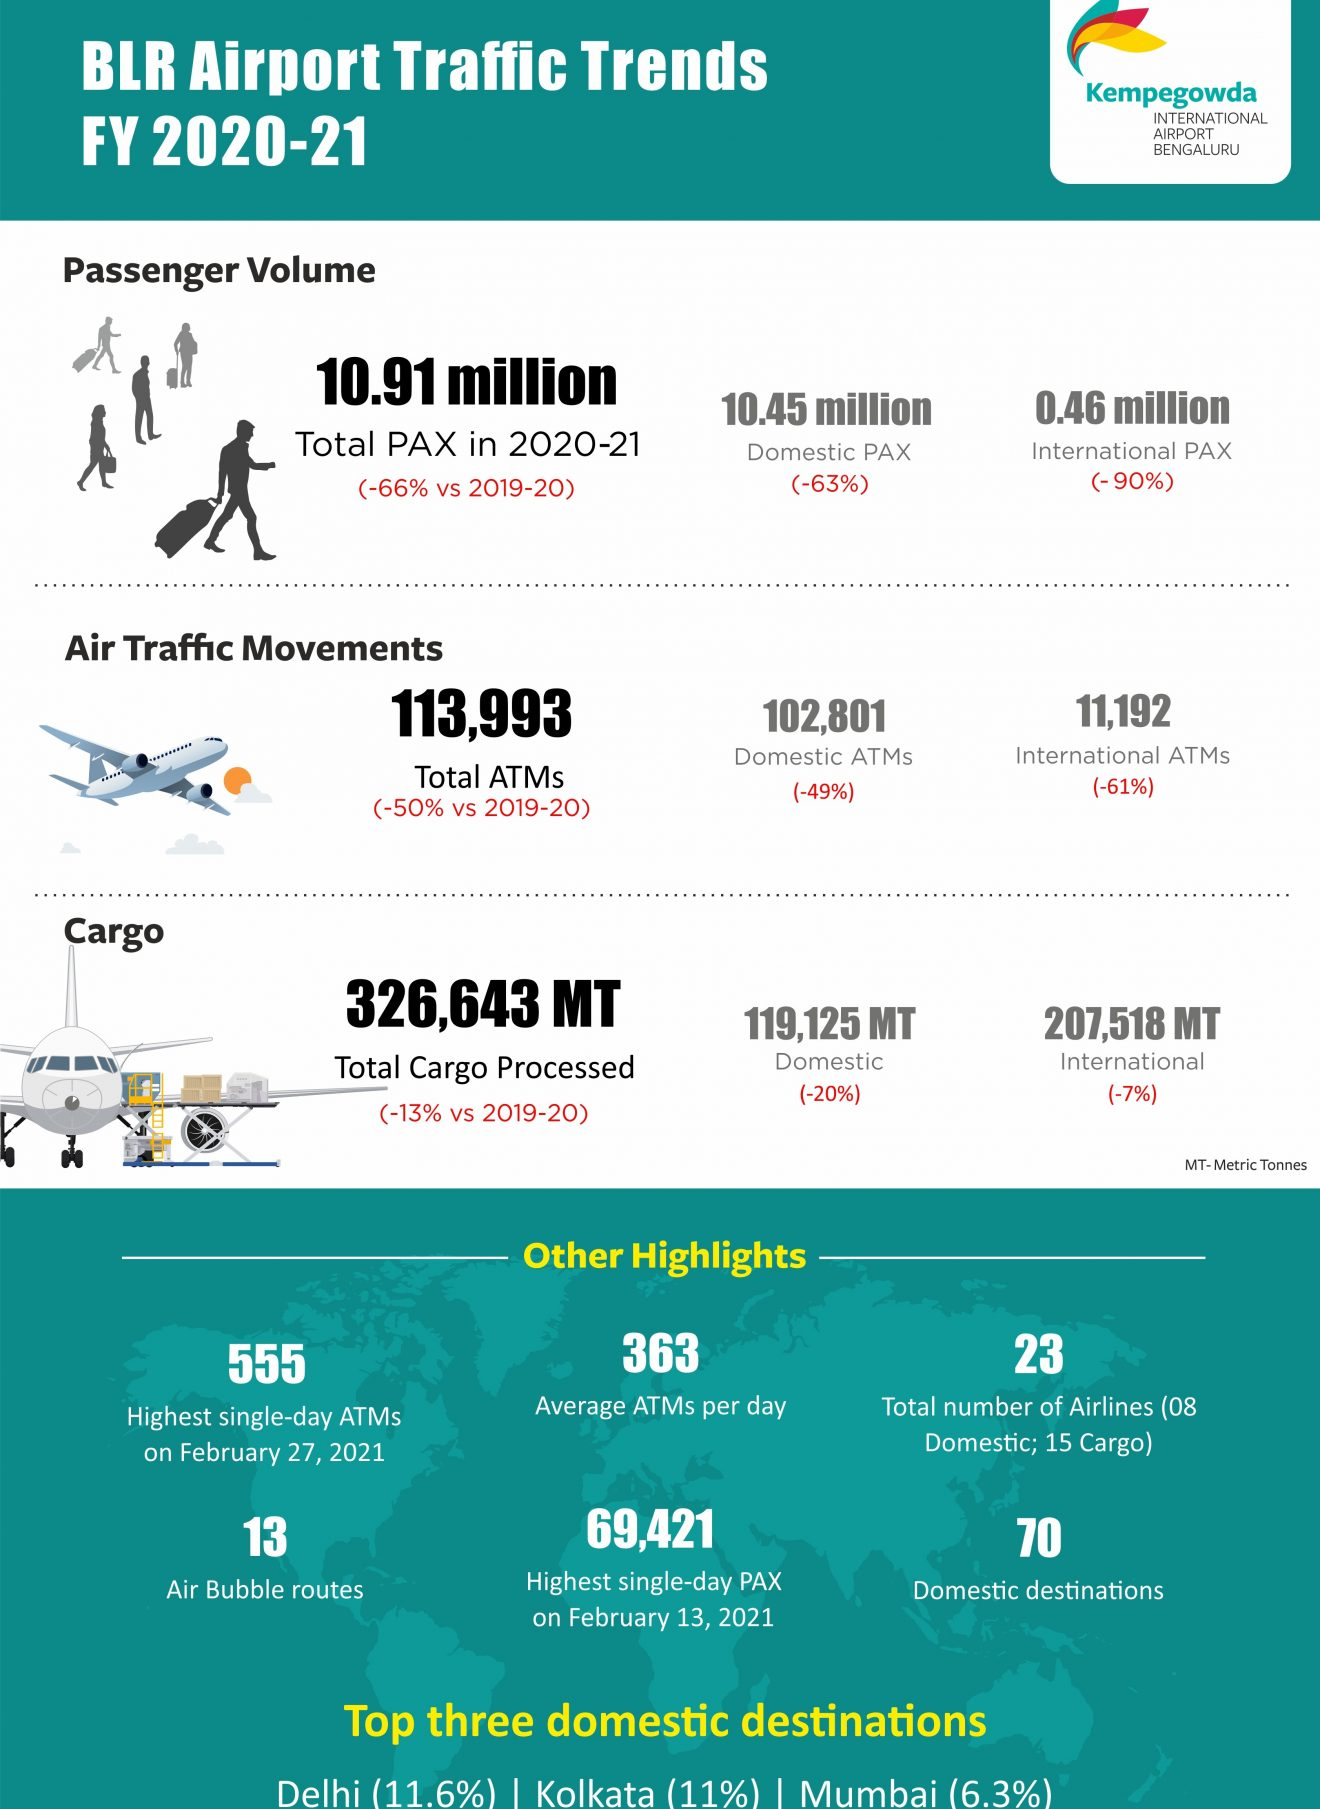 Passenger Traffic at BLR Airport Down by  an Unprecedented 66% for FY 2020-21